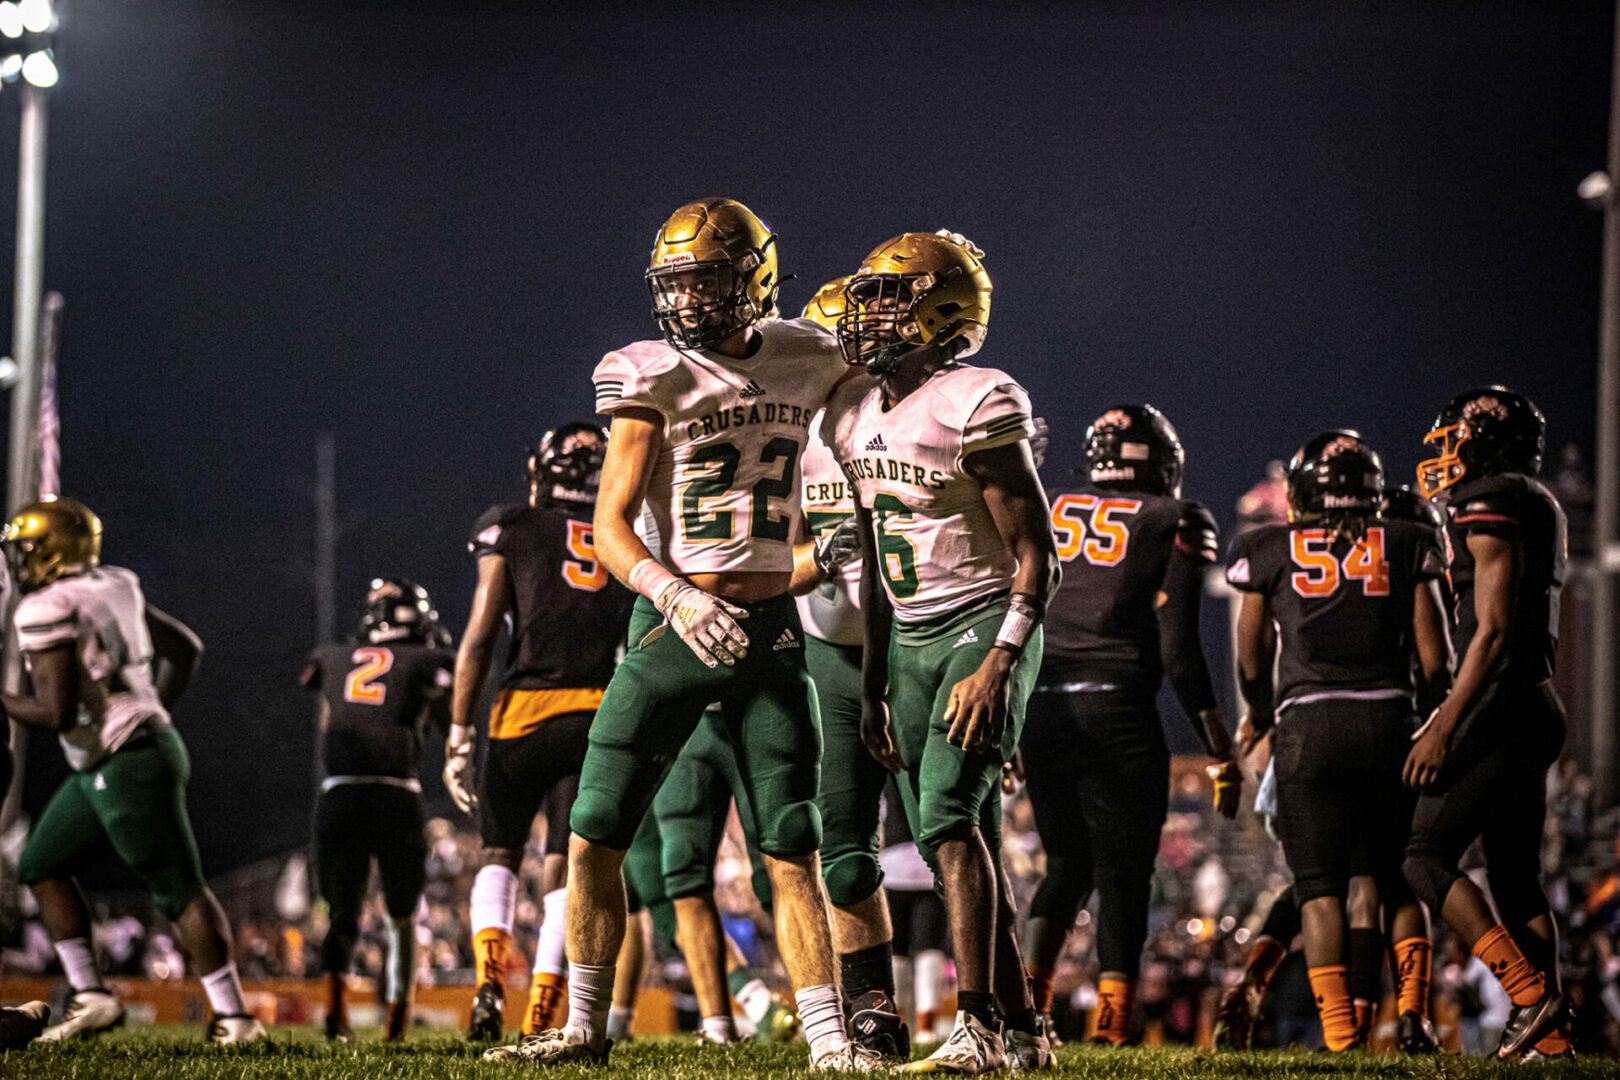 [VIDEO] Highlights from Muskegon Catholic's milestone 500th football win on Friday